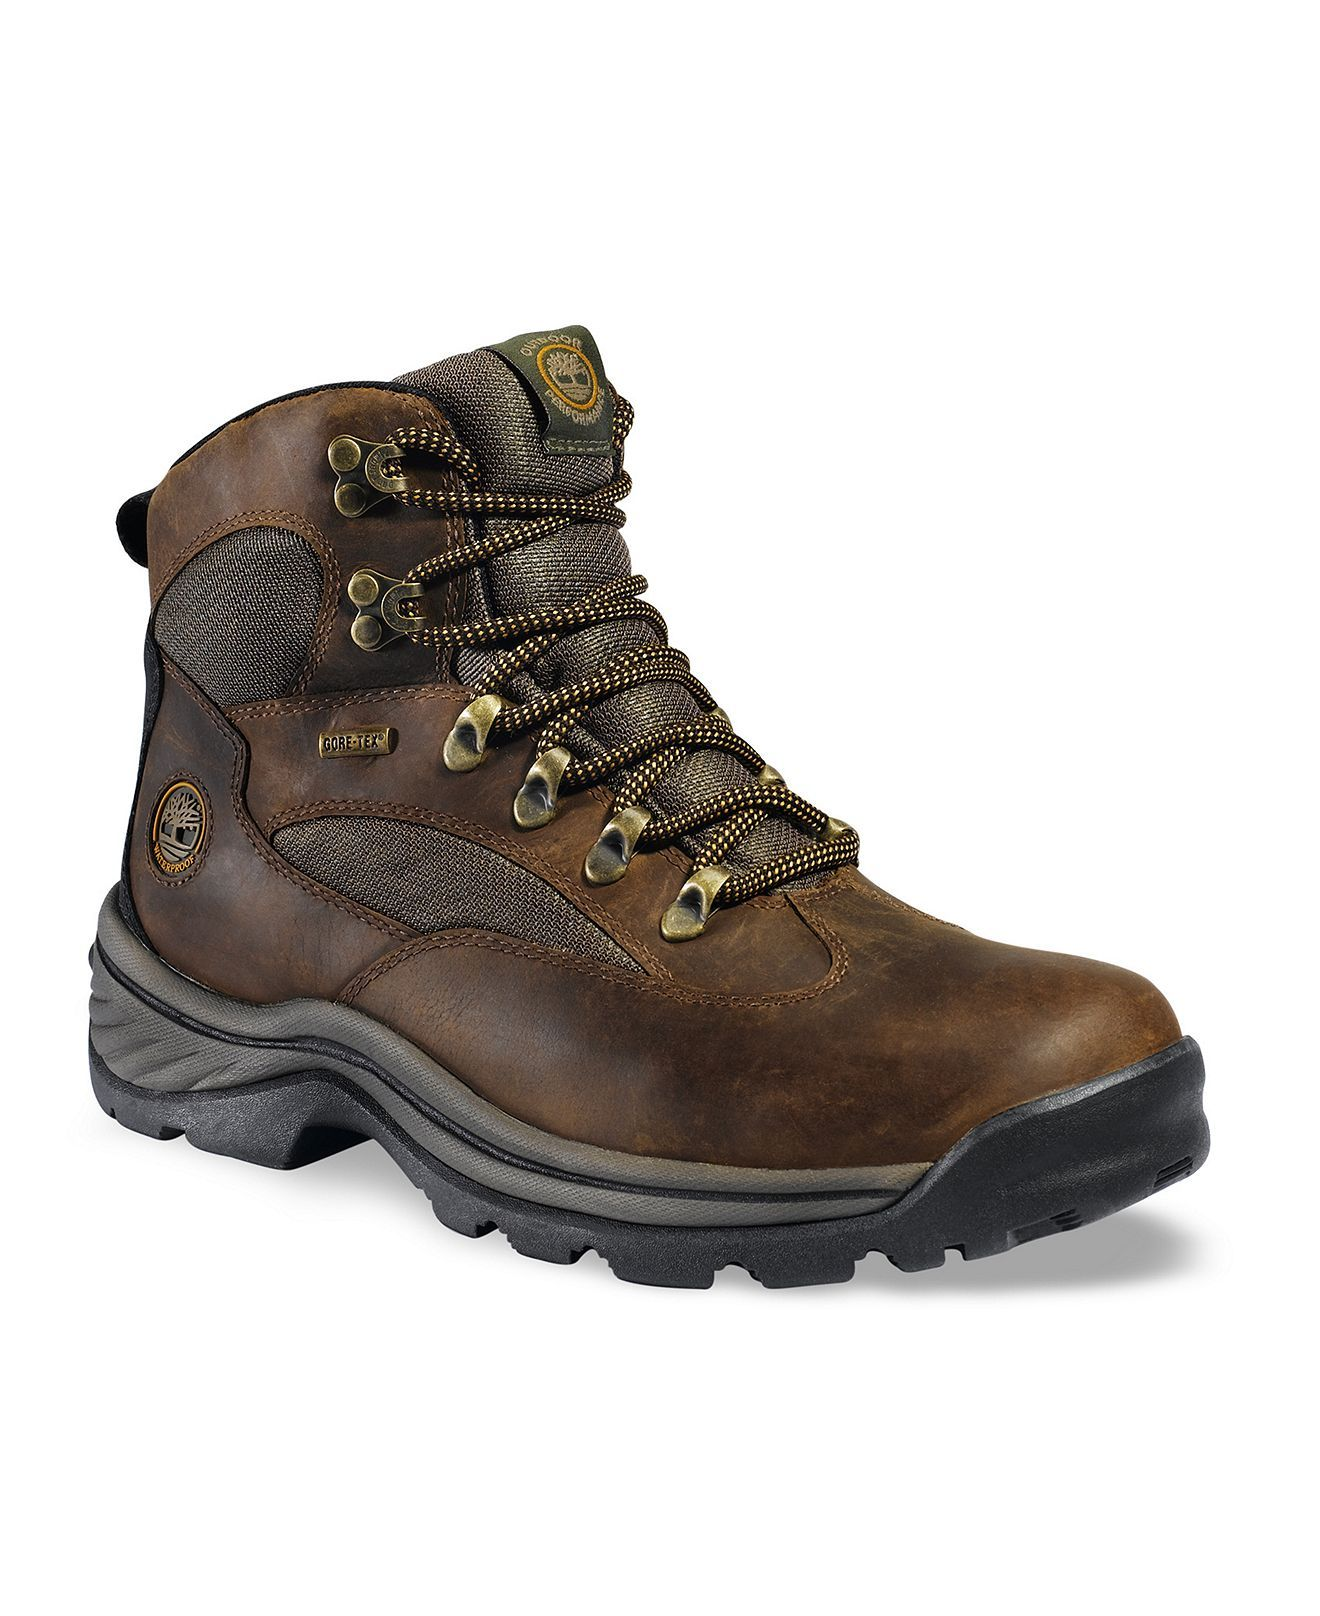 420664c26b99b Timberland Boots, Waterproof Chocorua Trail Gore-Tex Hiker...Great boot,  would highly recommend!!